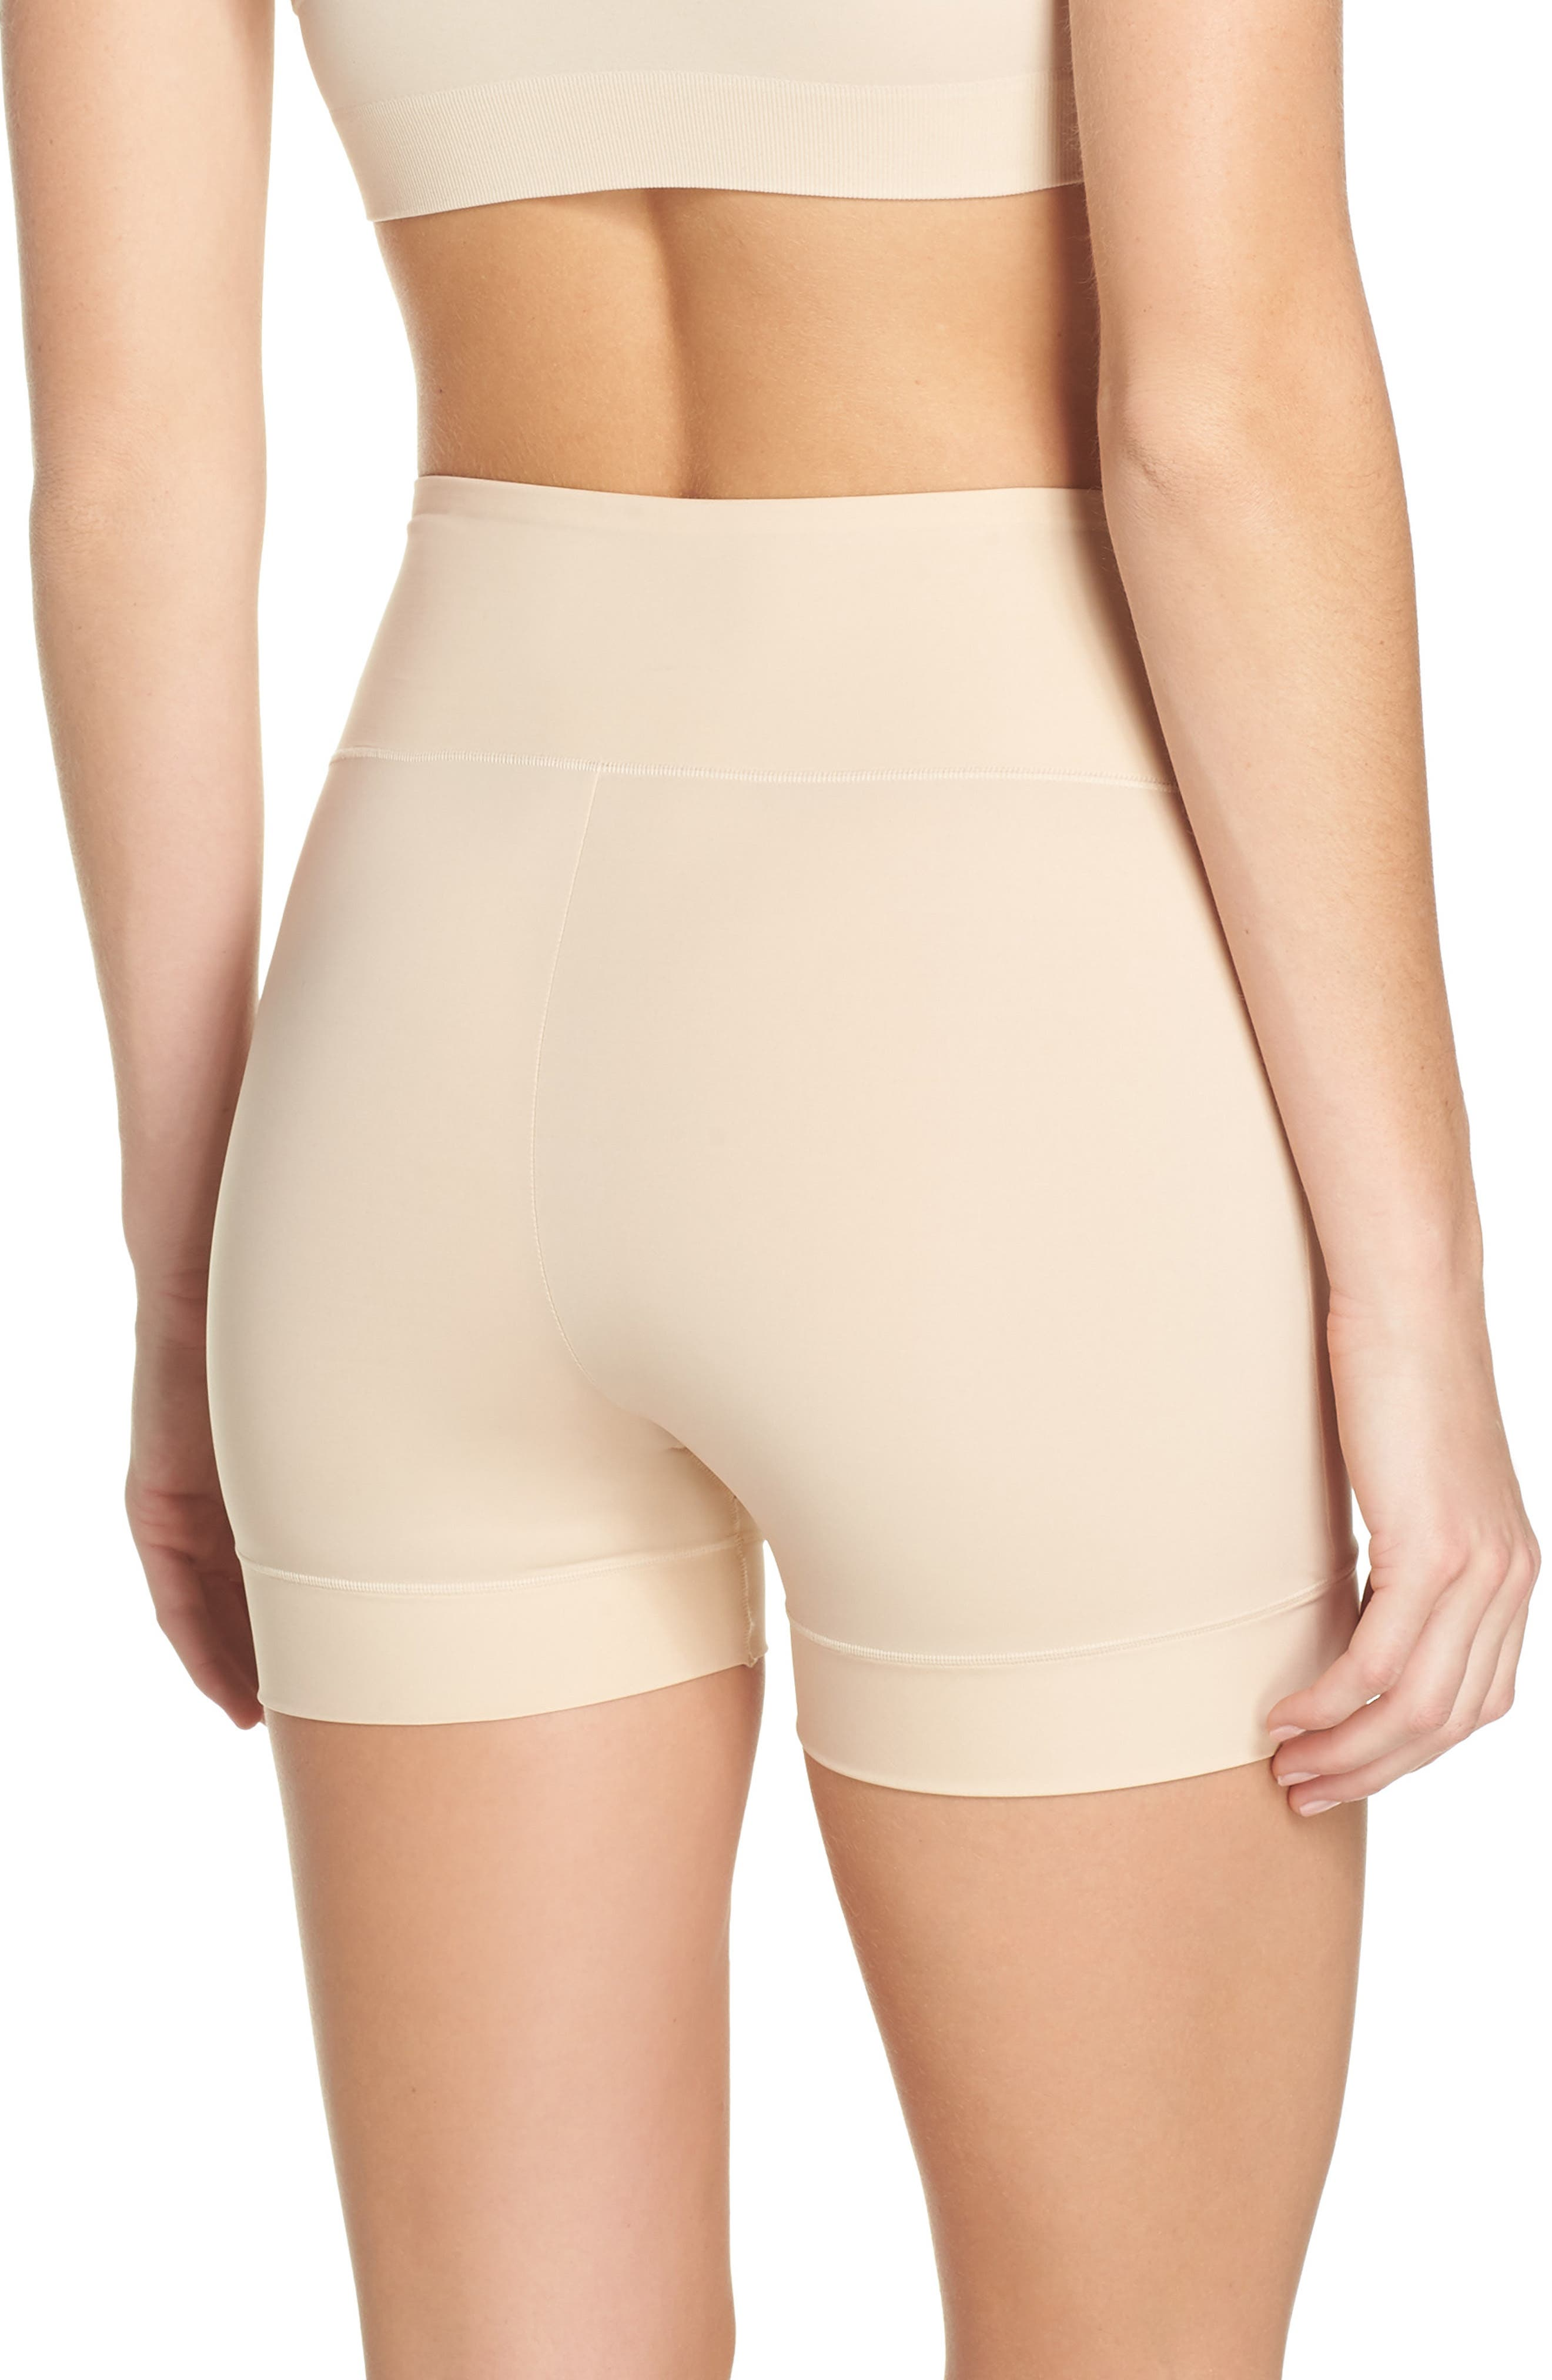 Tummie Tamers Mid Waist Shaping Shorts,                             Alternate thumbnail 2, color,                             Frappe